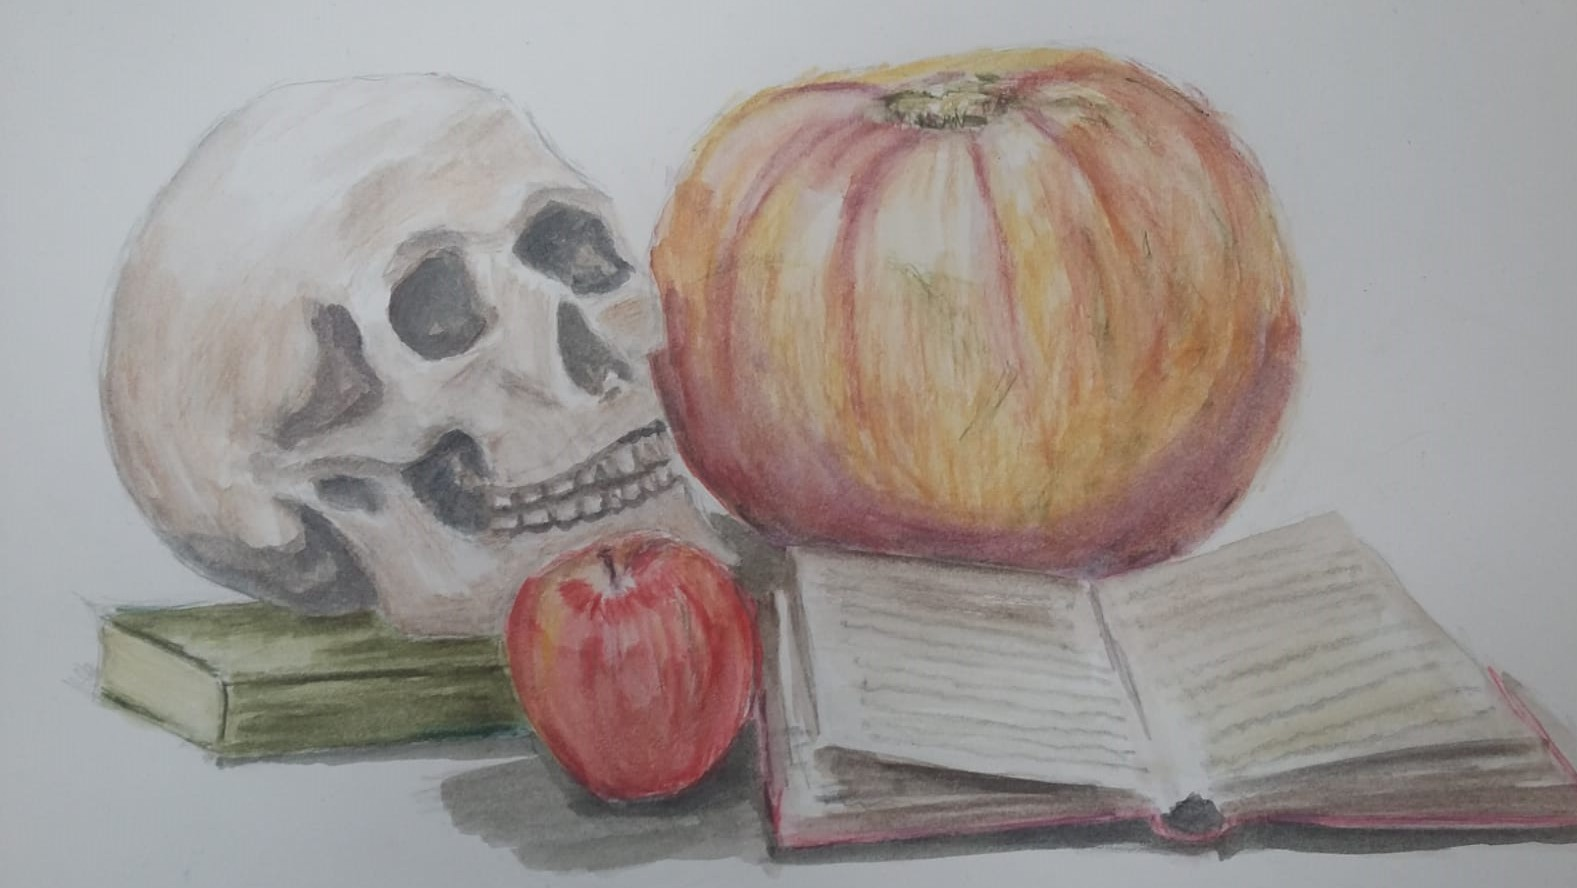 1810 Halloween Still Life Drawing